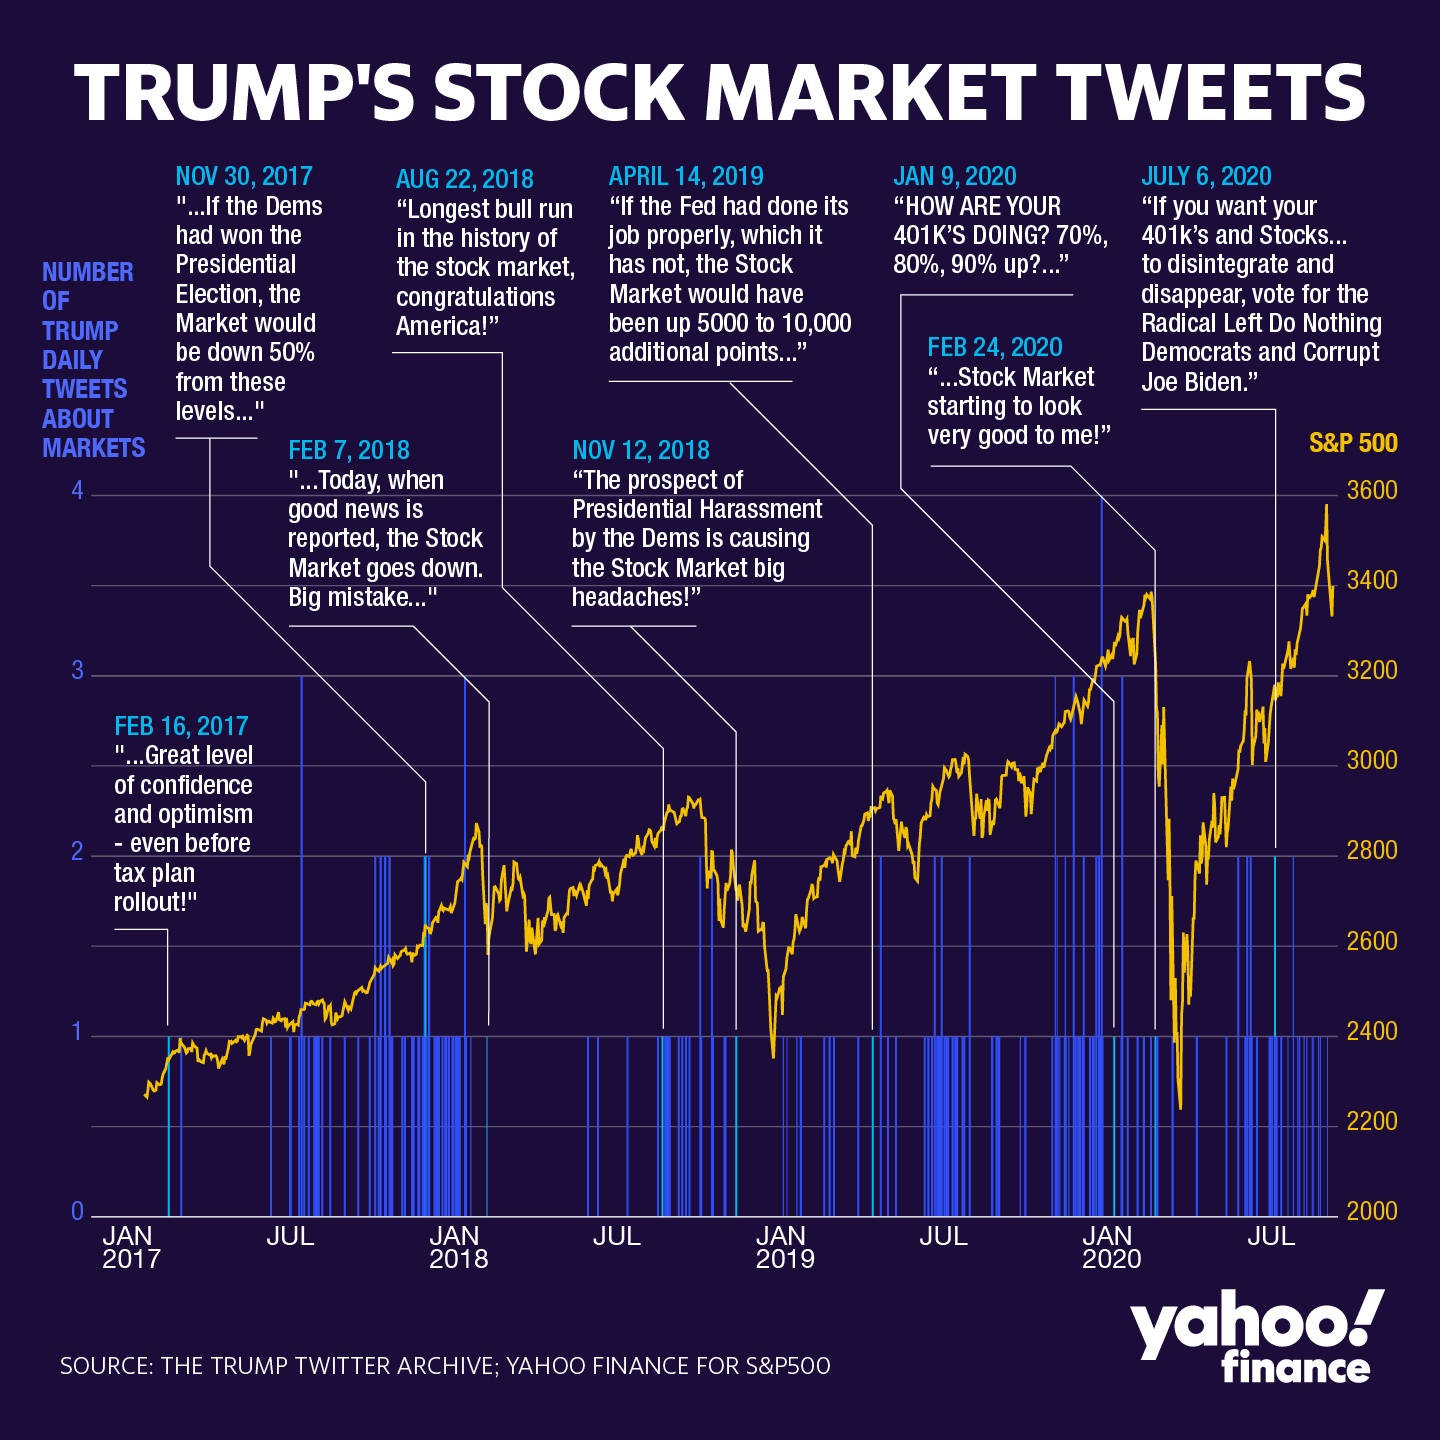 Trump's Stock Market Tweets